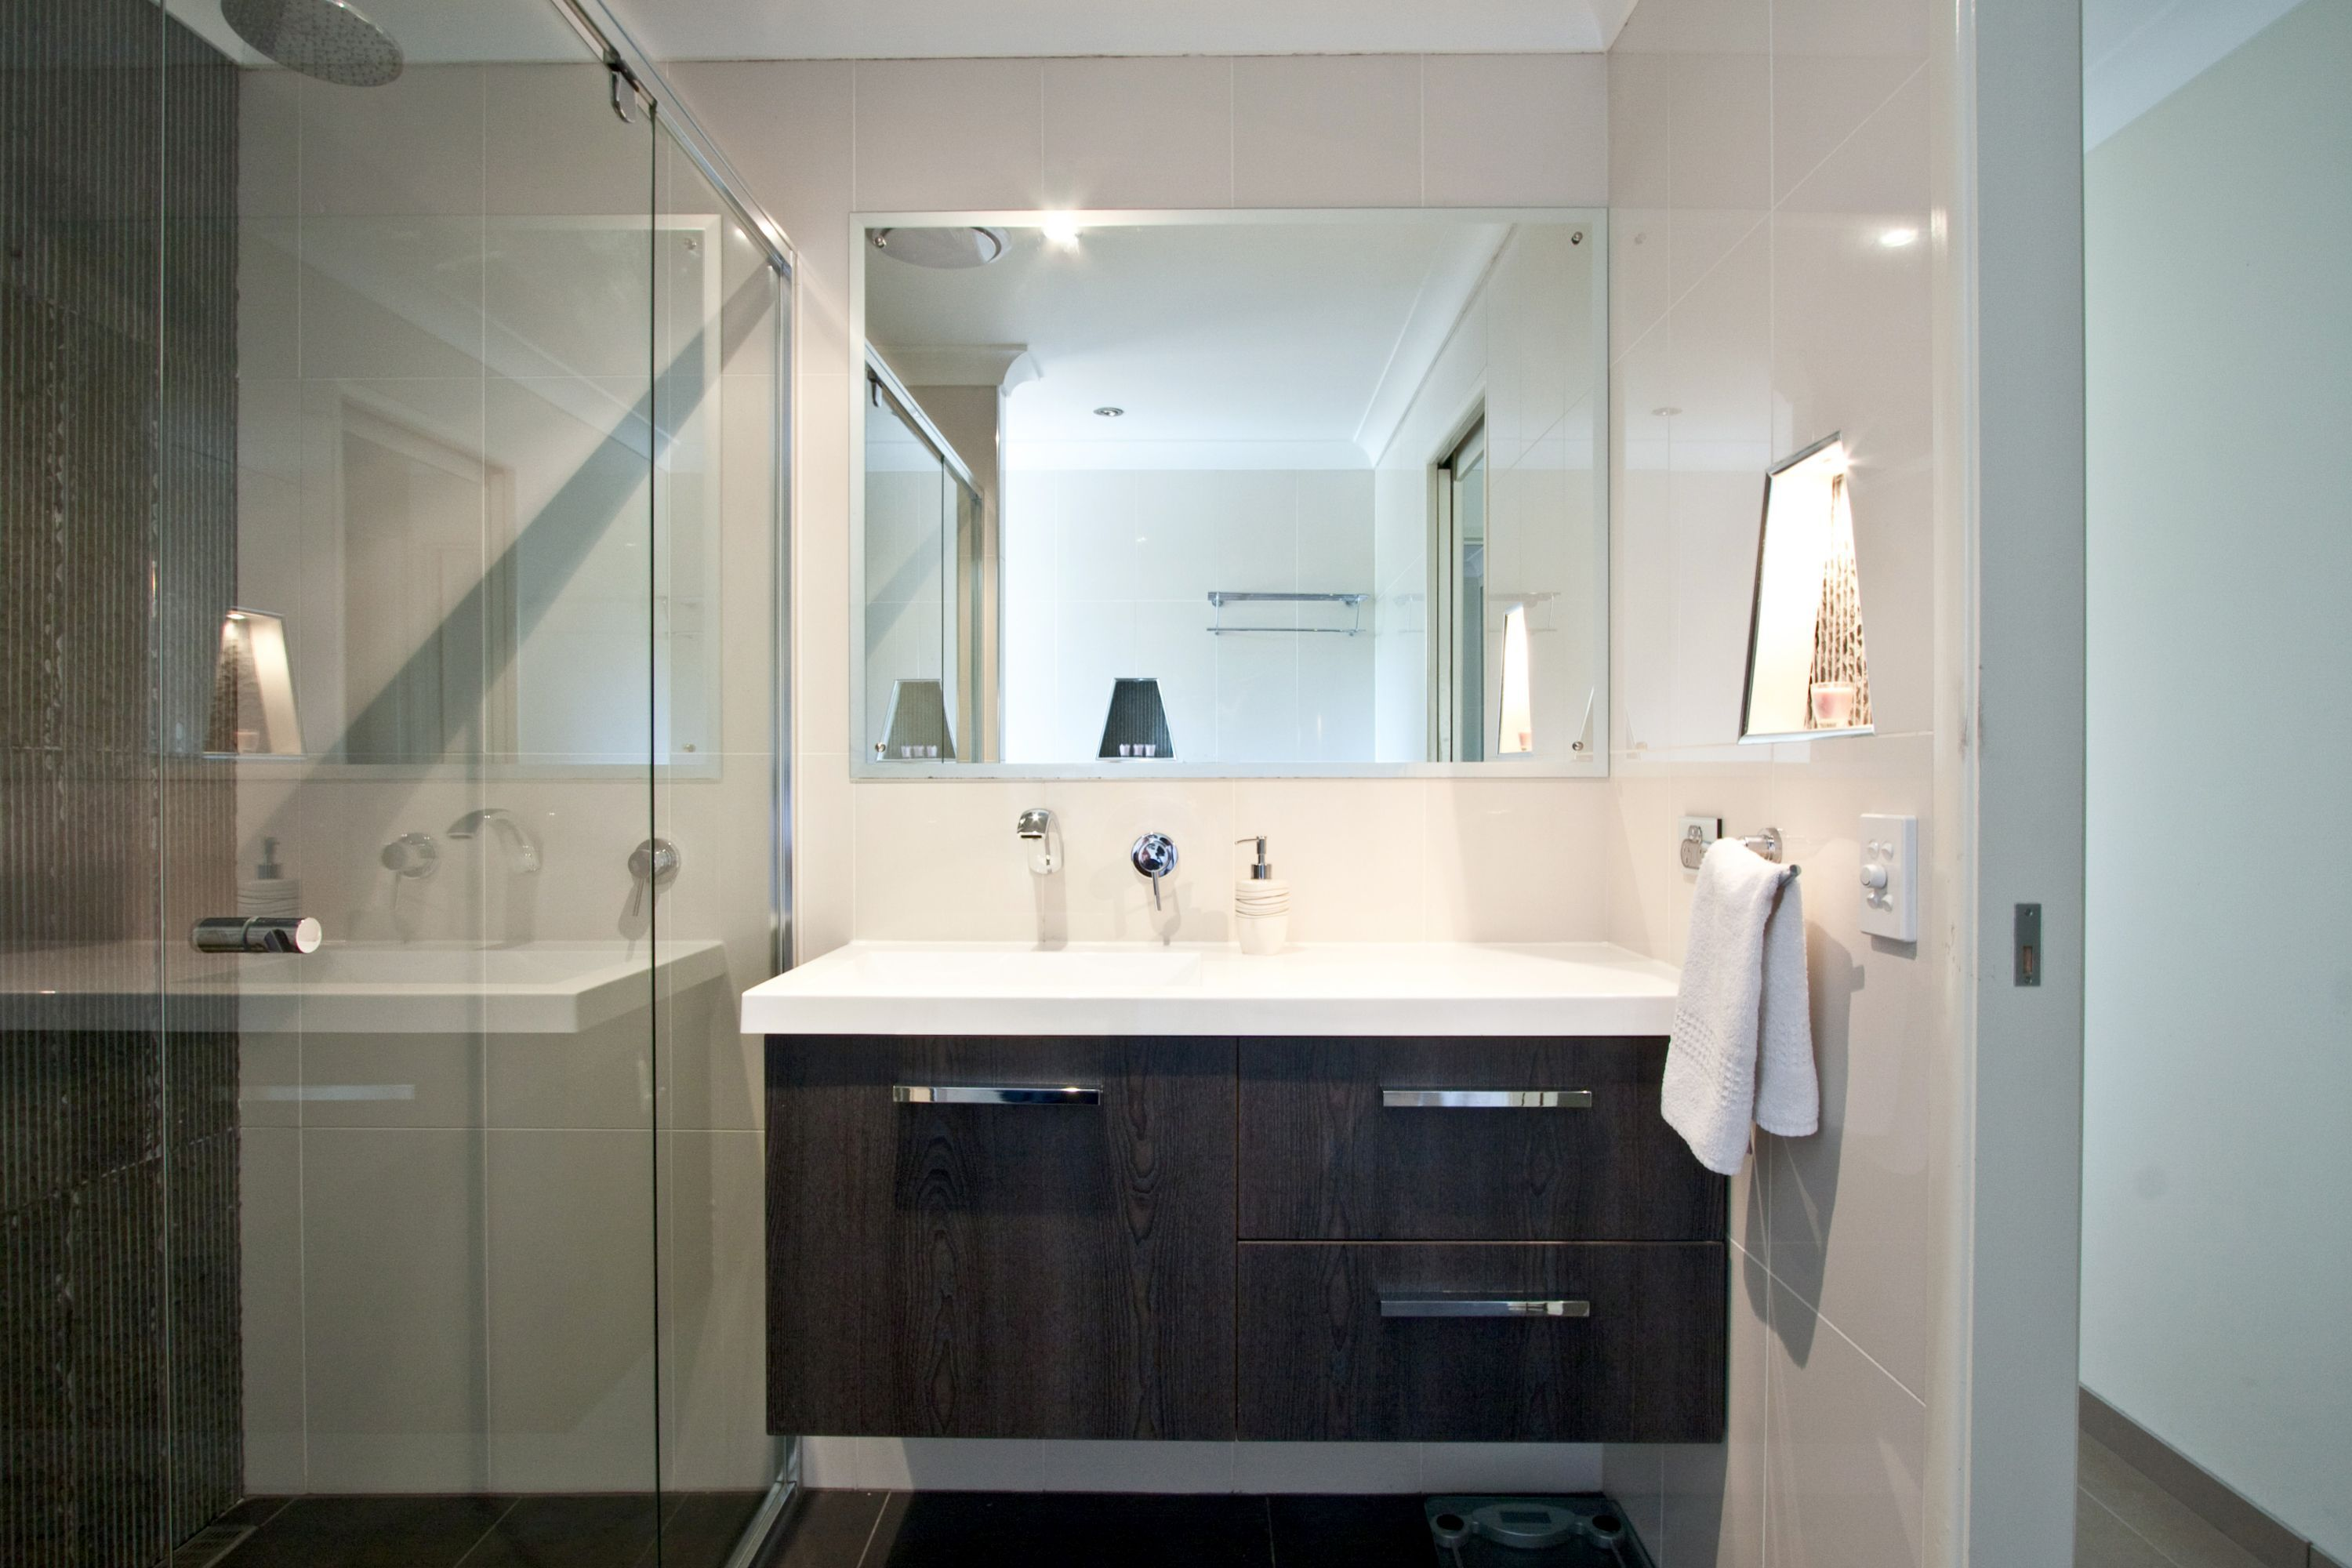 17 Best images about Bathroom Renovation Milwaukee on Pinterest   Small  bathroom remodeling  Bathroom renovations sydney and Bathroom remodeling. 17 Best images about Bathroom Renovation Milwaukee on Pinterest